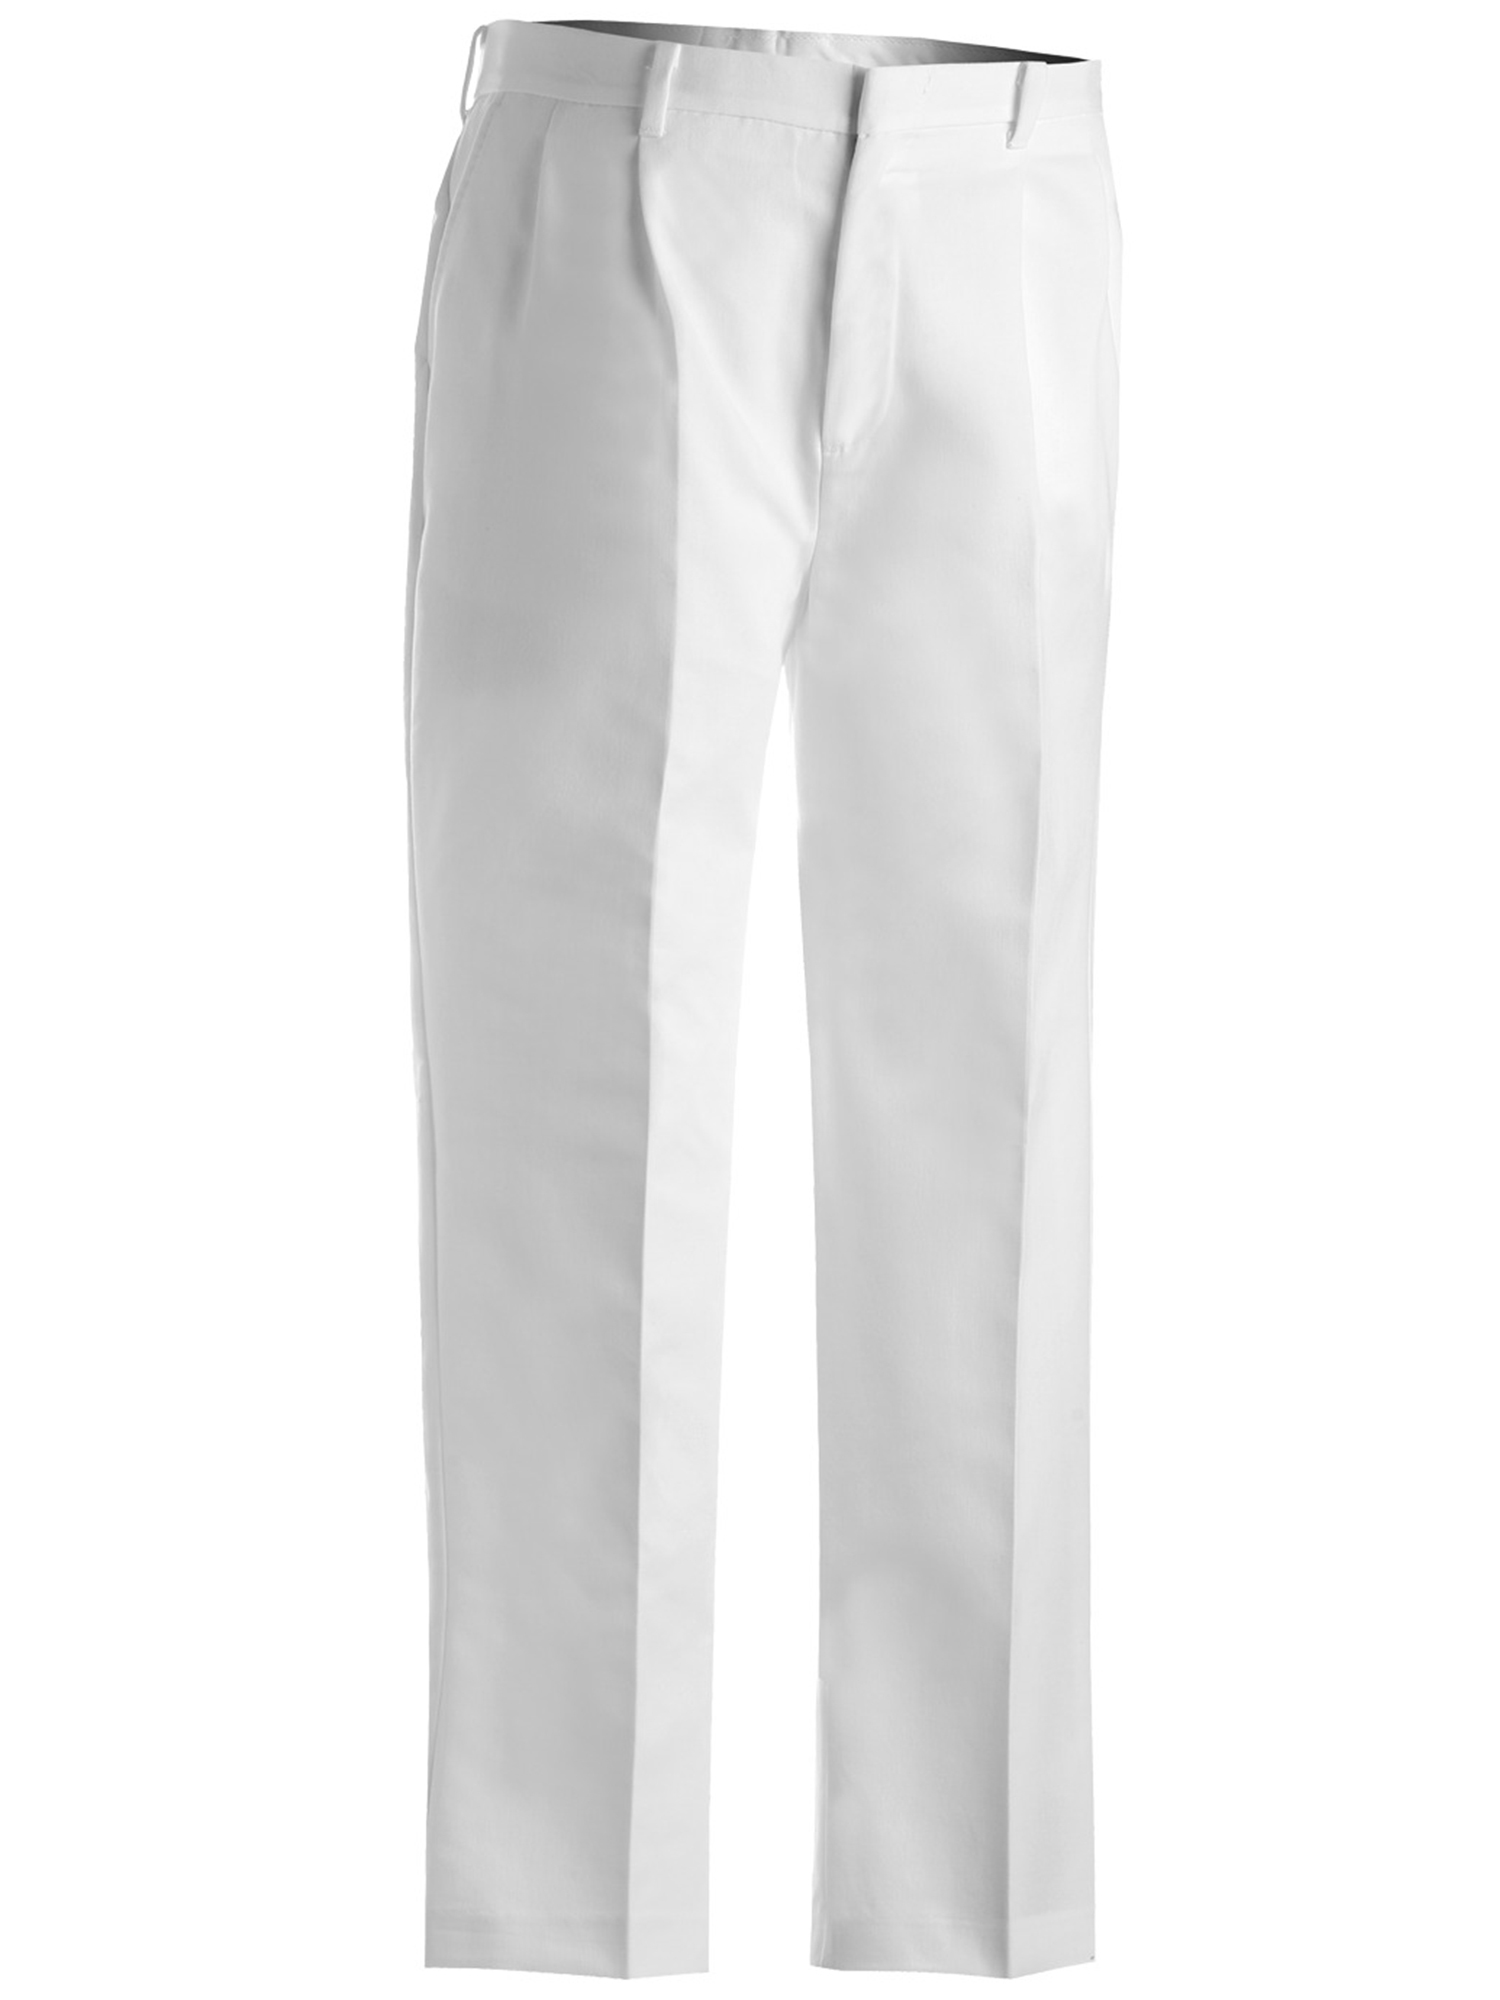 Ed Garments Men's Tall Business Casual Chino Pleated Pant, WHITE, 28 34